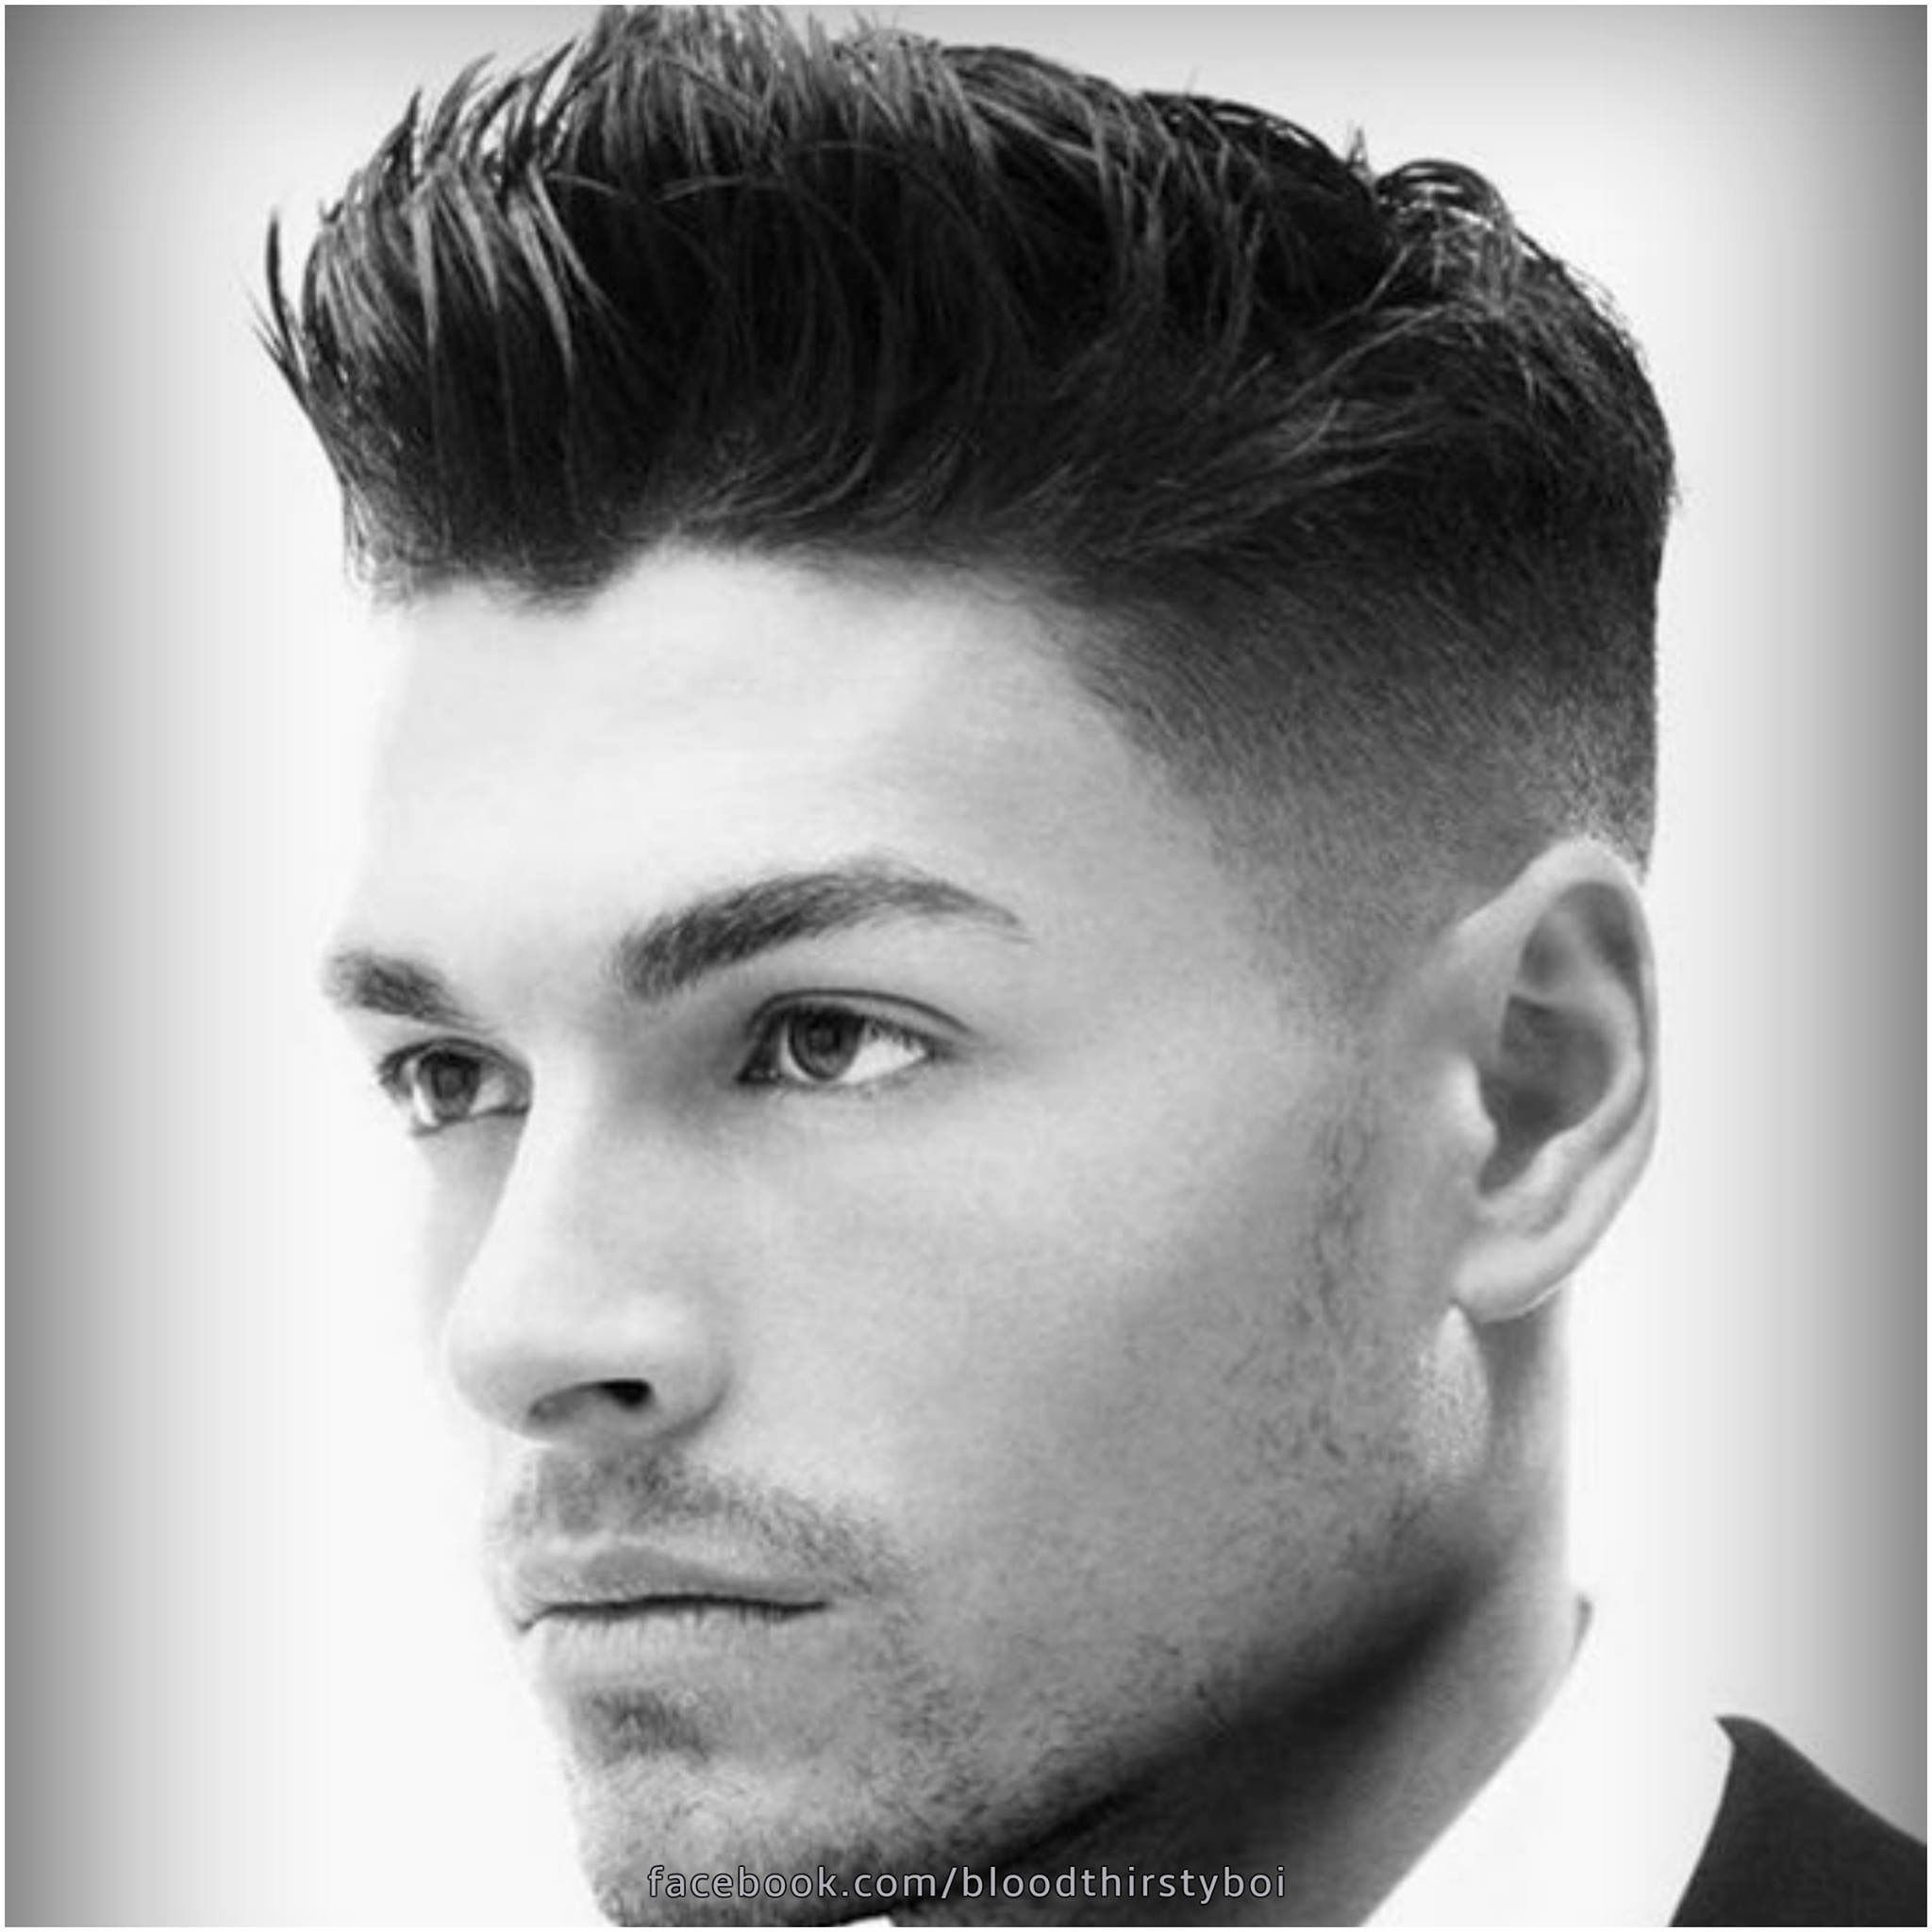 Hair Reference  Pompadour with shaved sides color: black